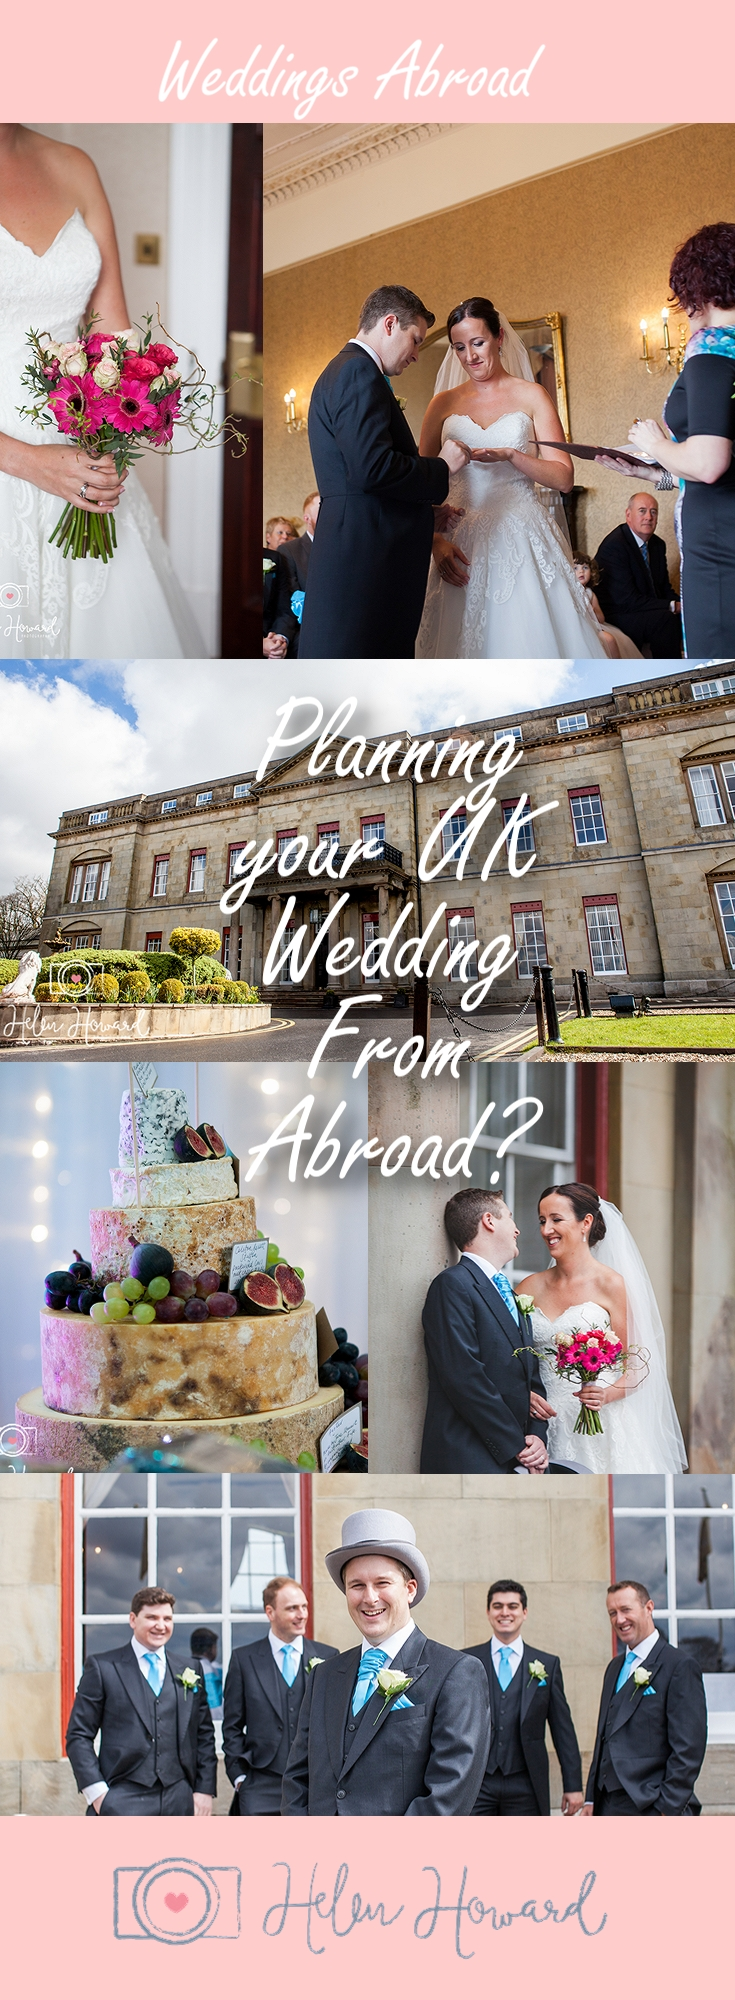 Planning a wedding in the UK from Abroad